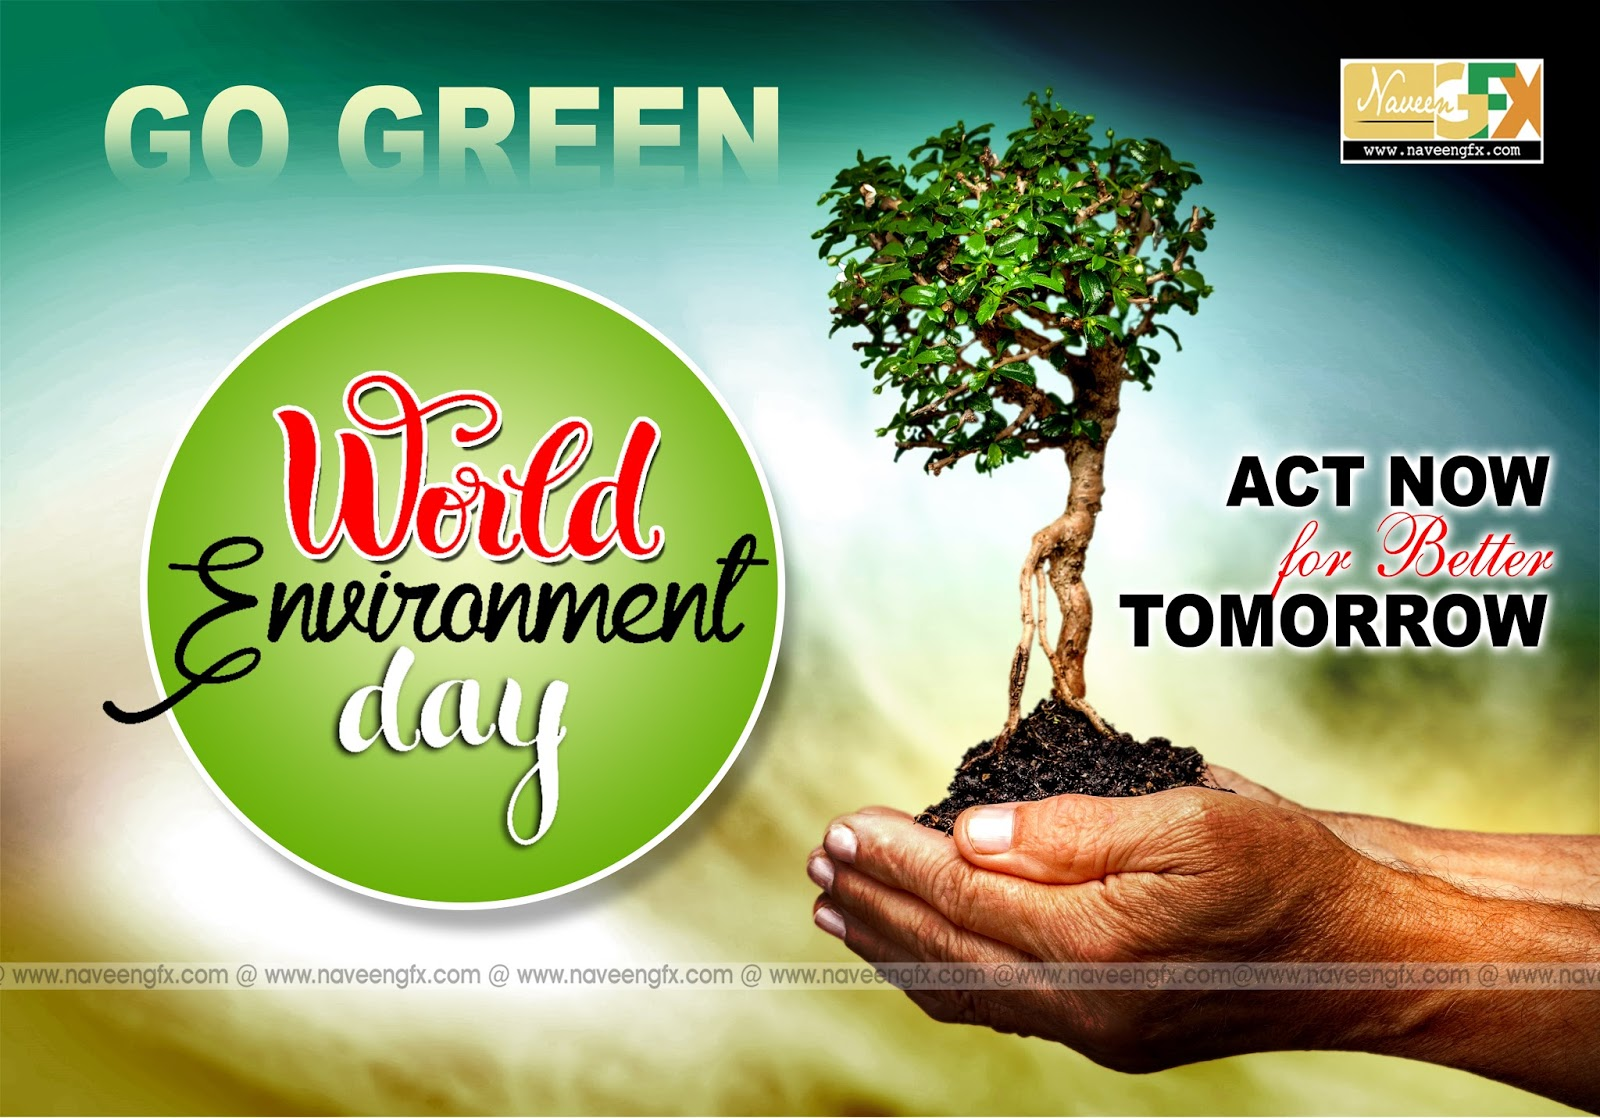 essay on world environment day images